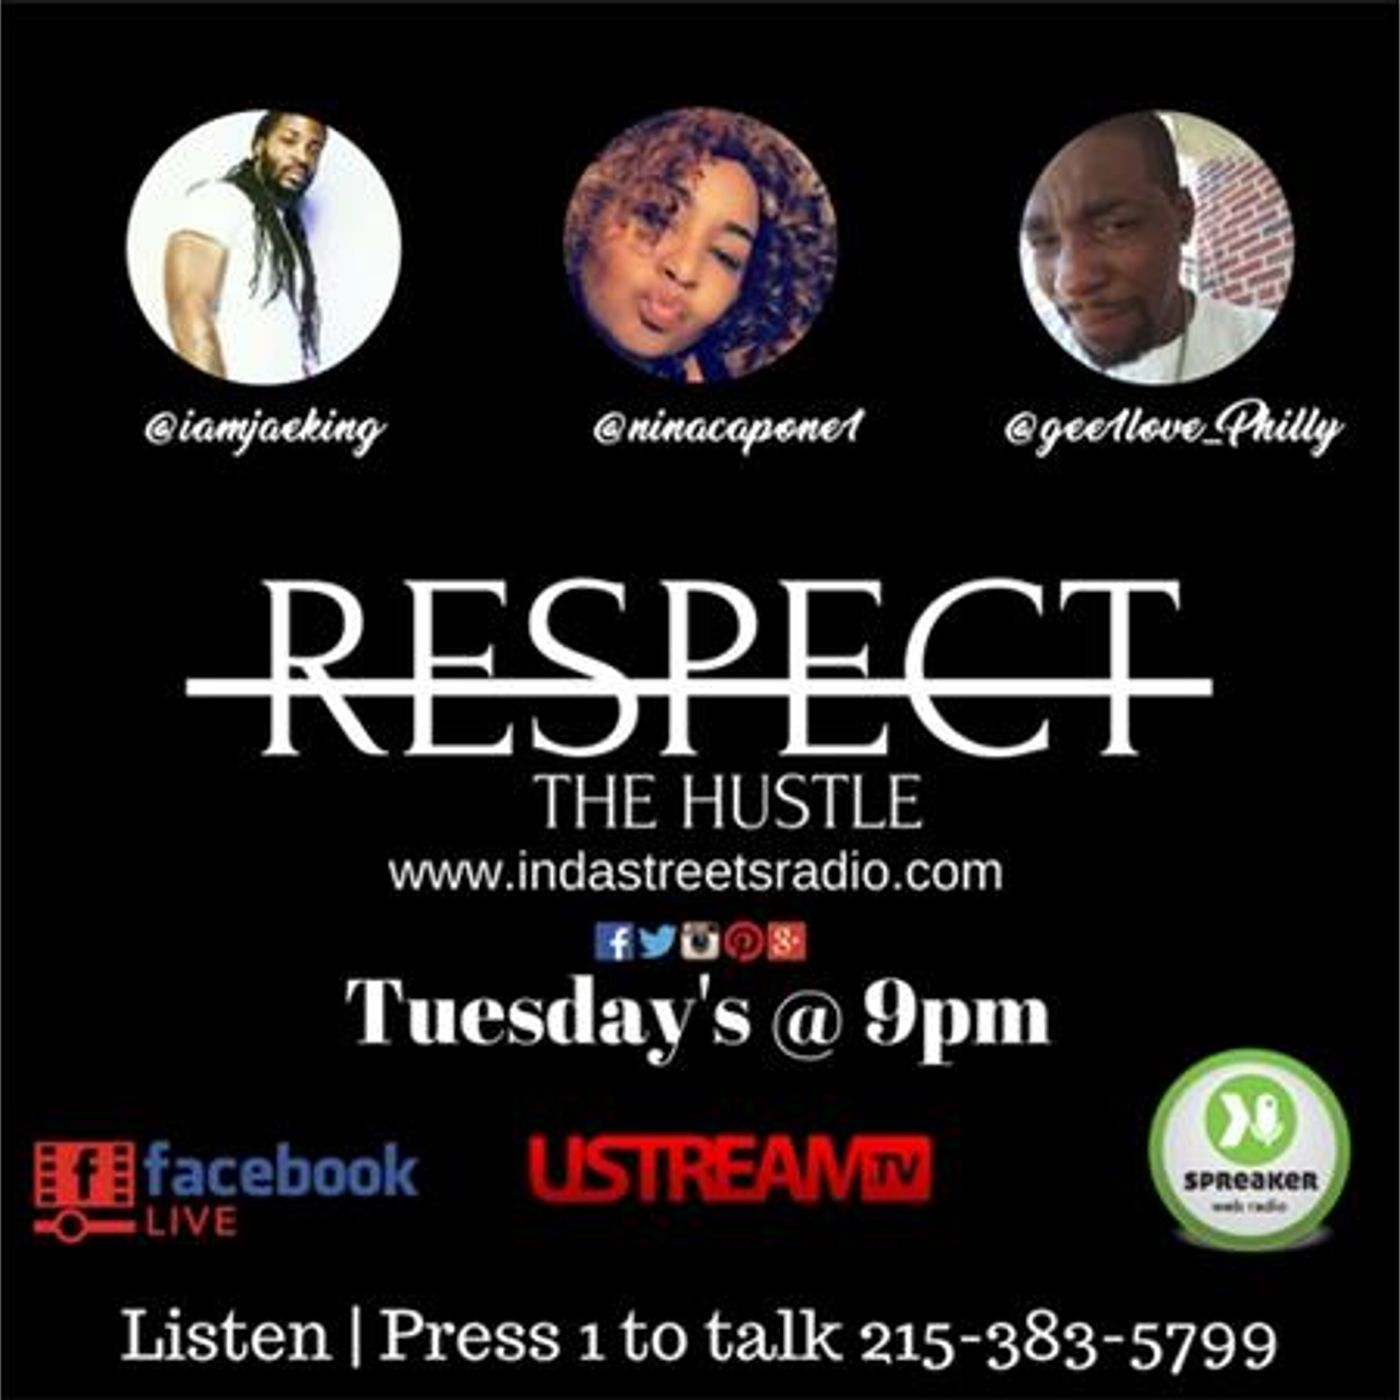 Respect The Hustle- People Empowerment Show Special Invited Guest 215-383-5799